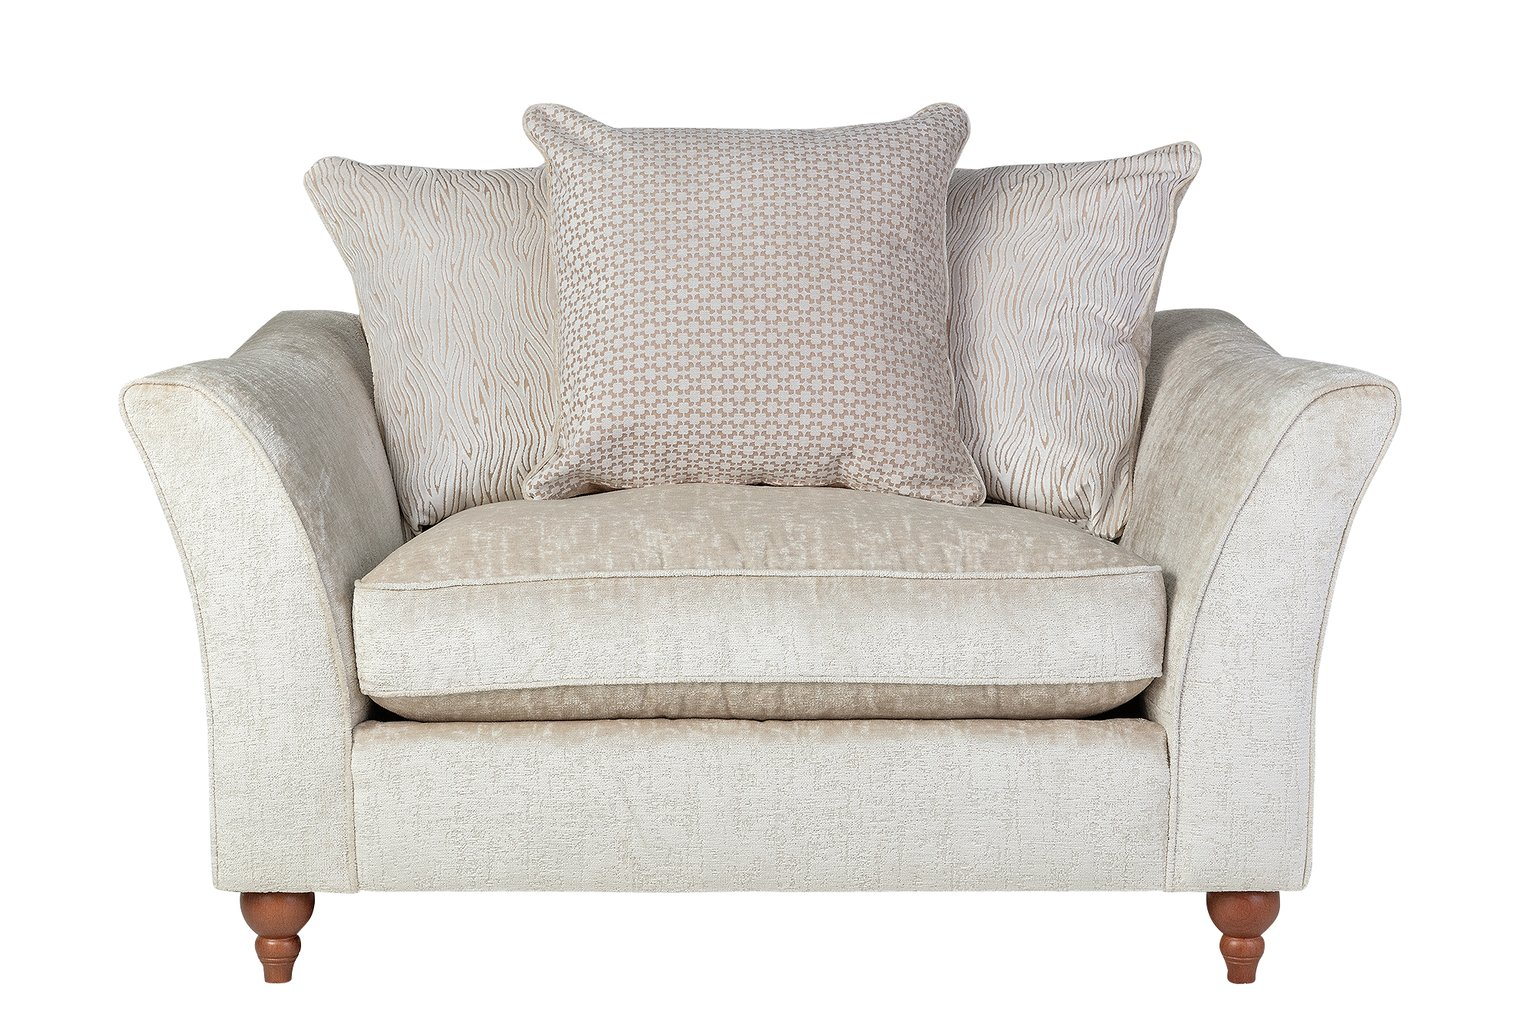 Argos Home Buxton Fabric Cuddle Chair - Cream